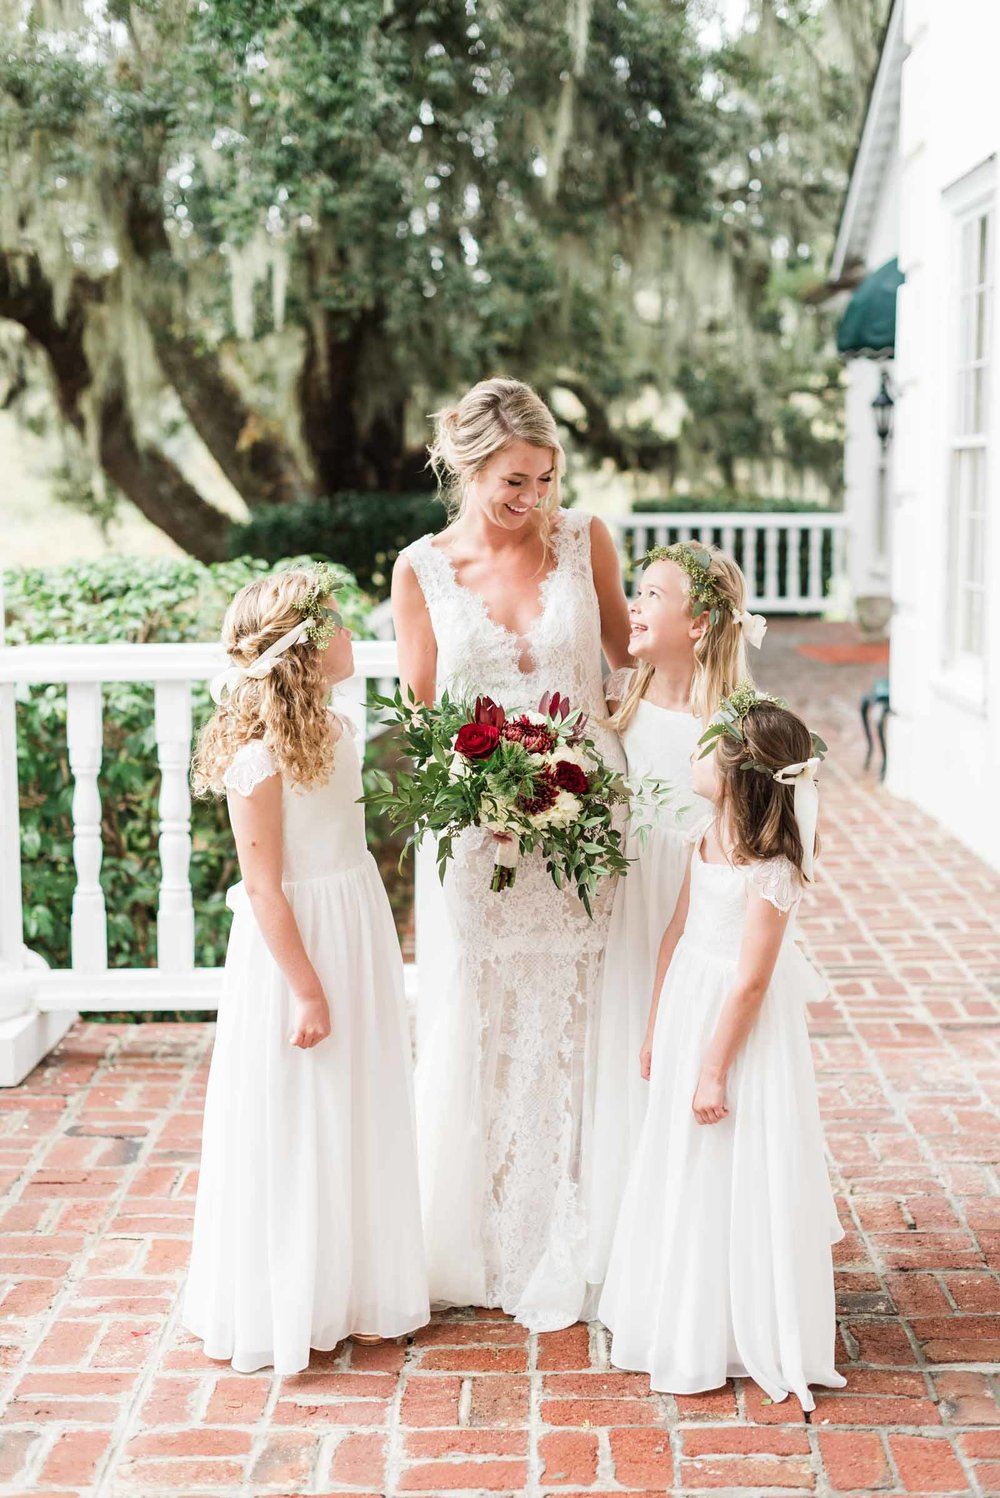 Wedding at Heritage Plantation in Pawley's Island_Markie Walden Photo-22.jpg